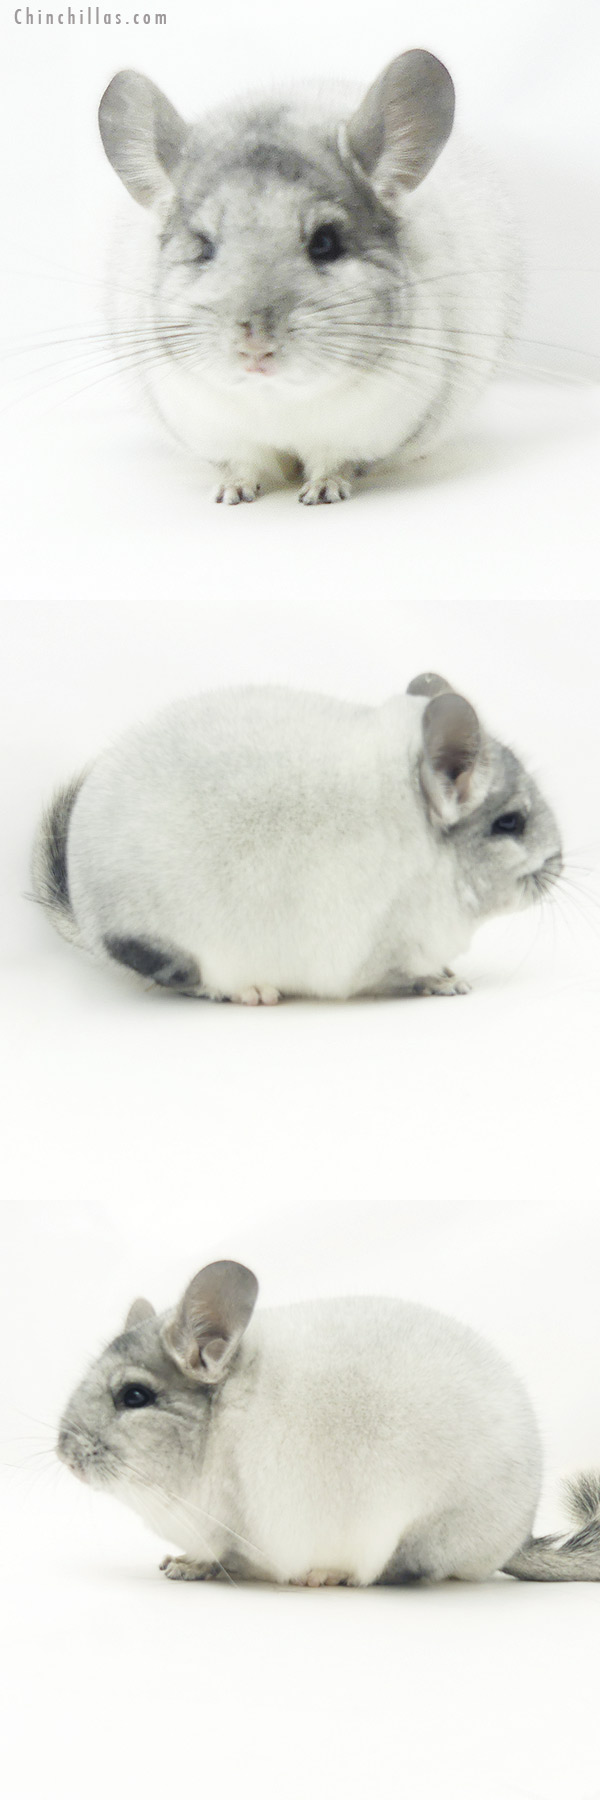 20150 Blocky Premium Production Quality White Mosaic Female Chinchilla